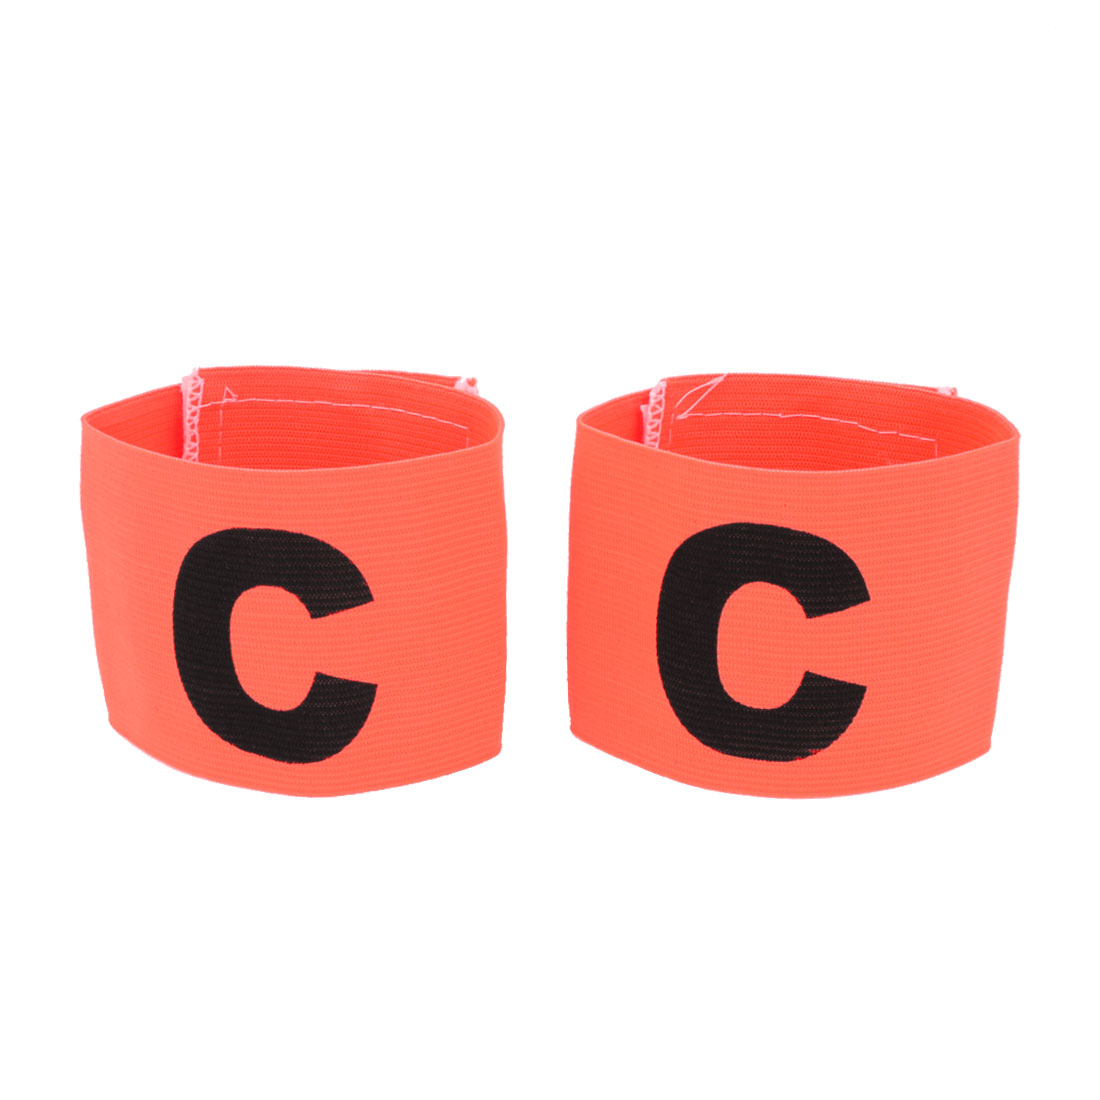 Hook Loop Closure Orange Stretchy Team Football Captain Armband 2 PCS